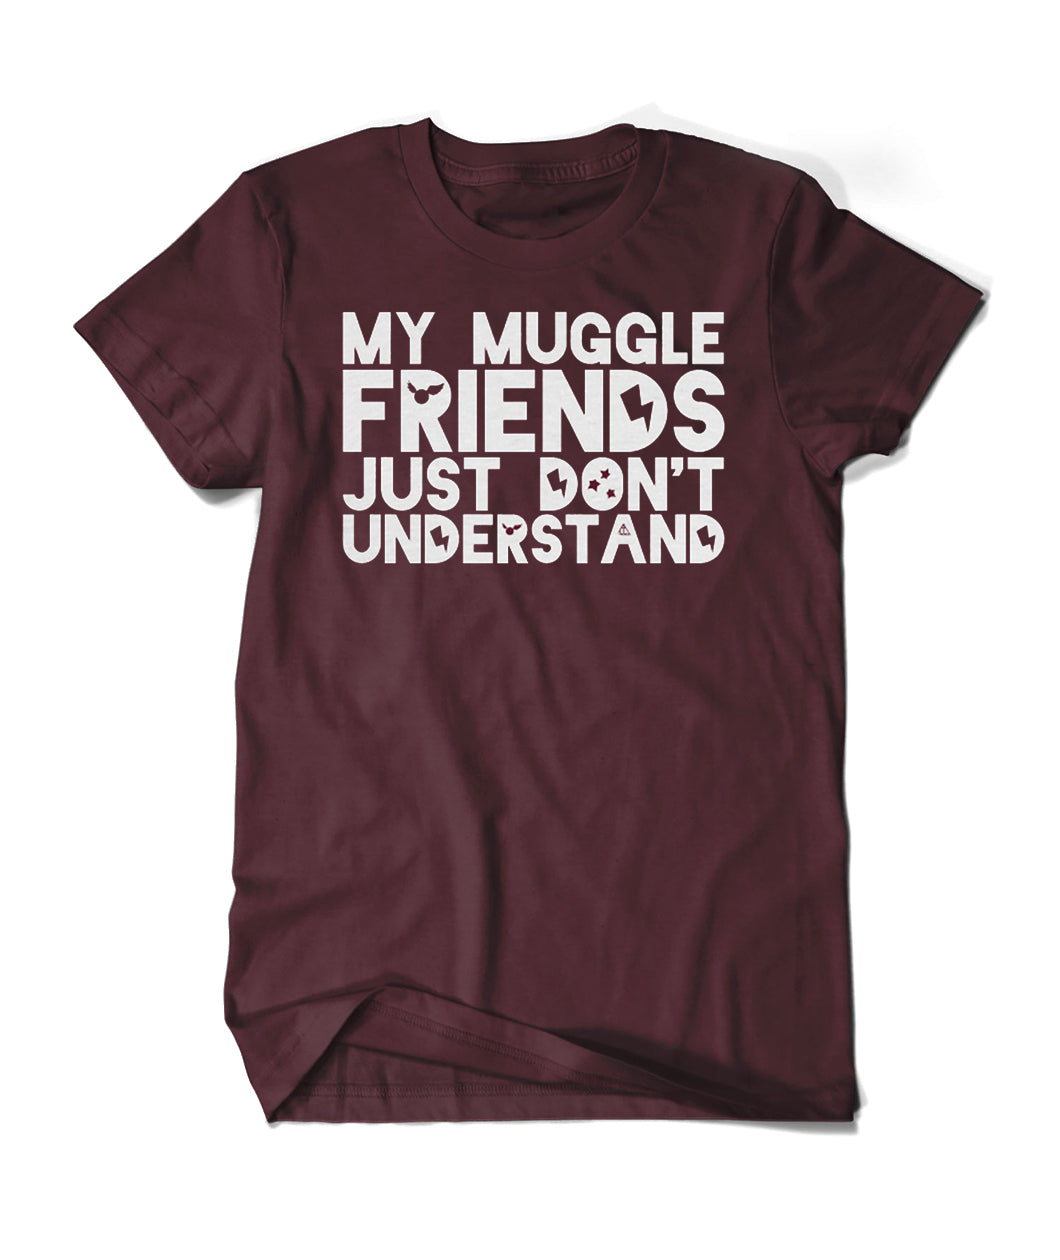 My Muggle Friends Shirt